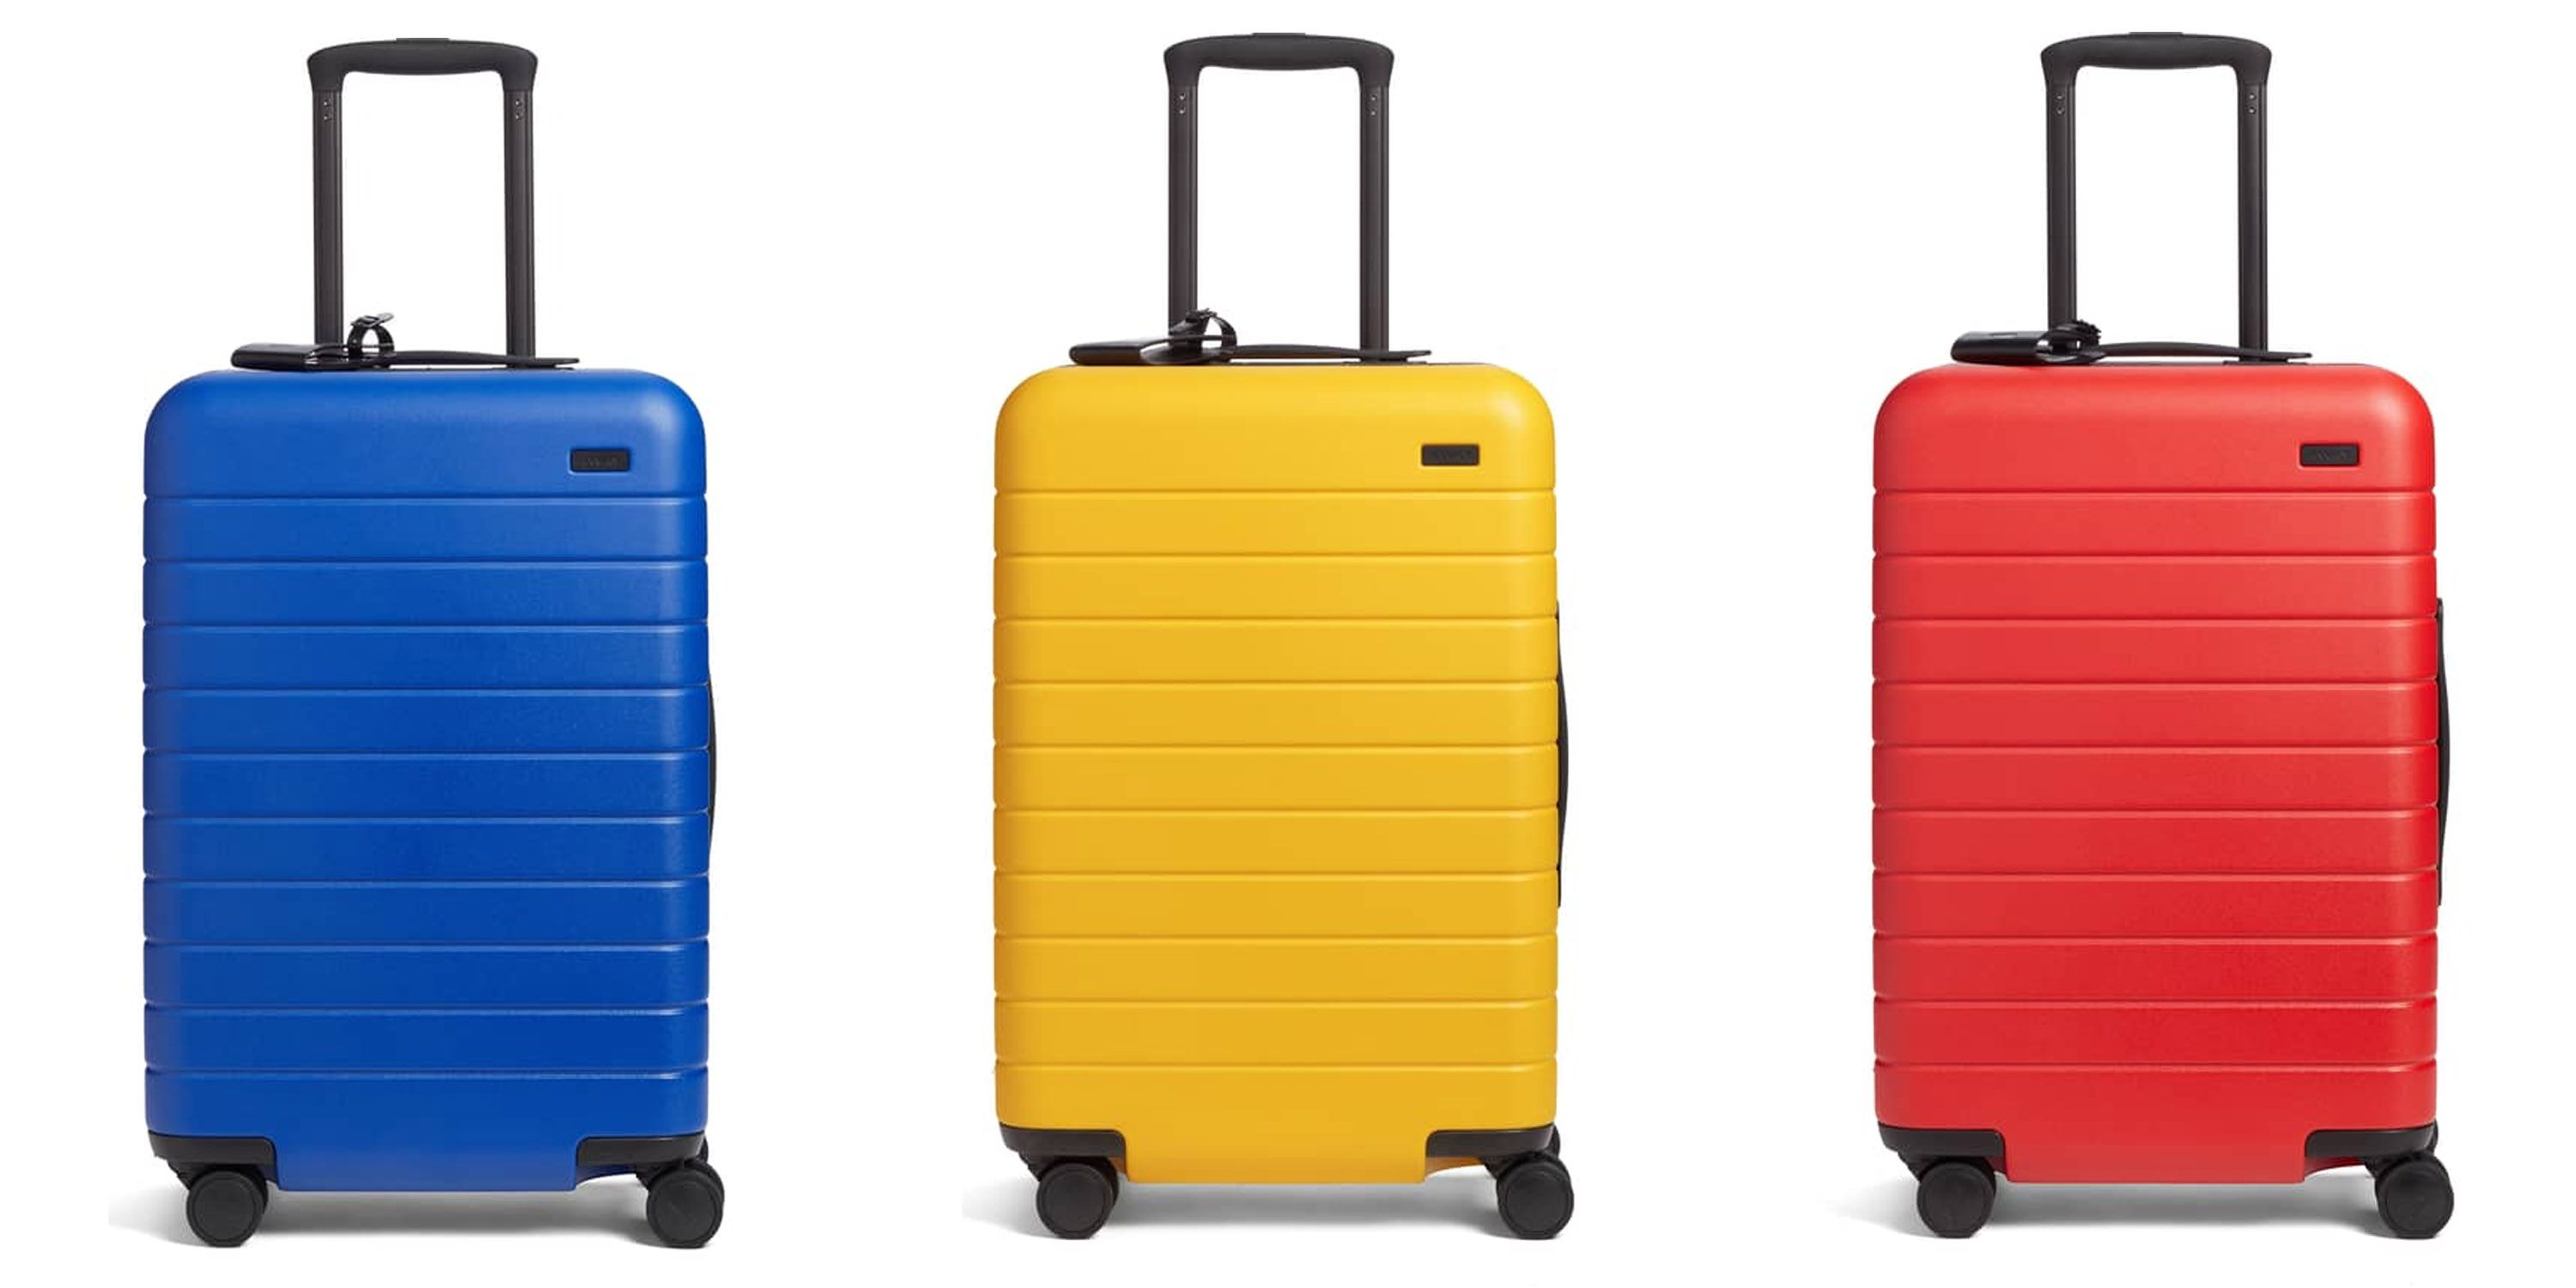 5e64804b5db Away Luggage at Nordstrom - Buy Away Suitcases in Yellow, Blue, or ...